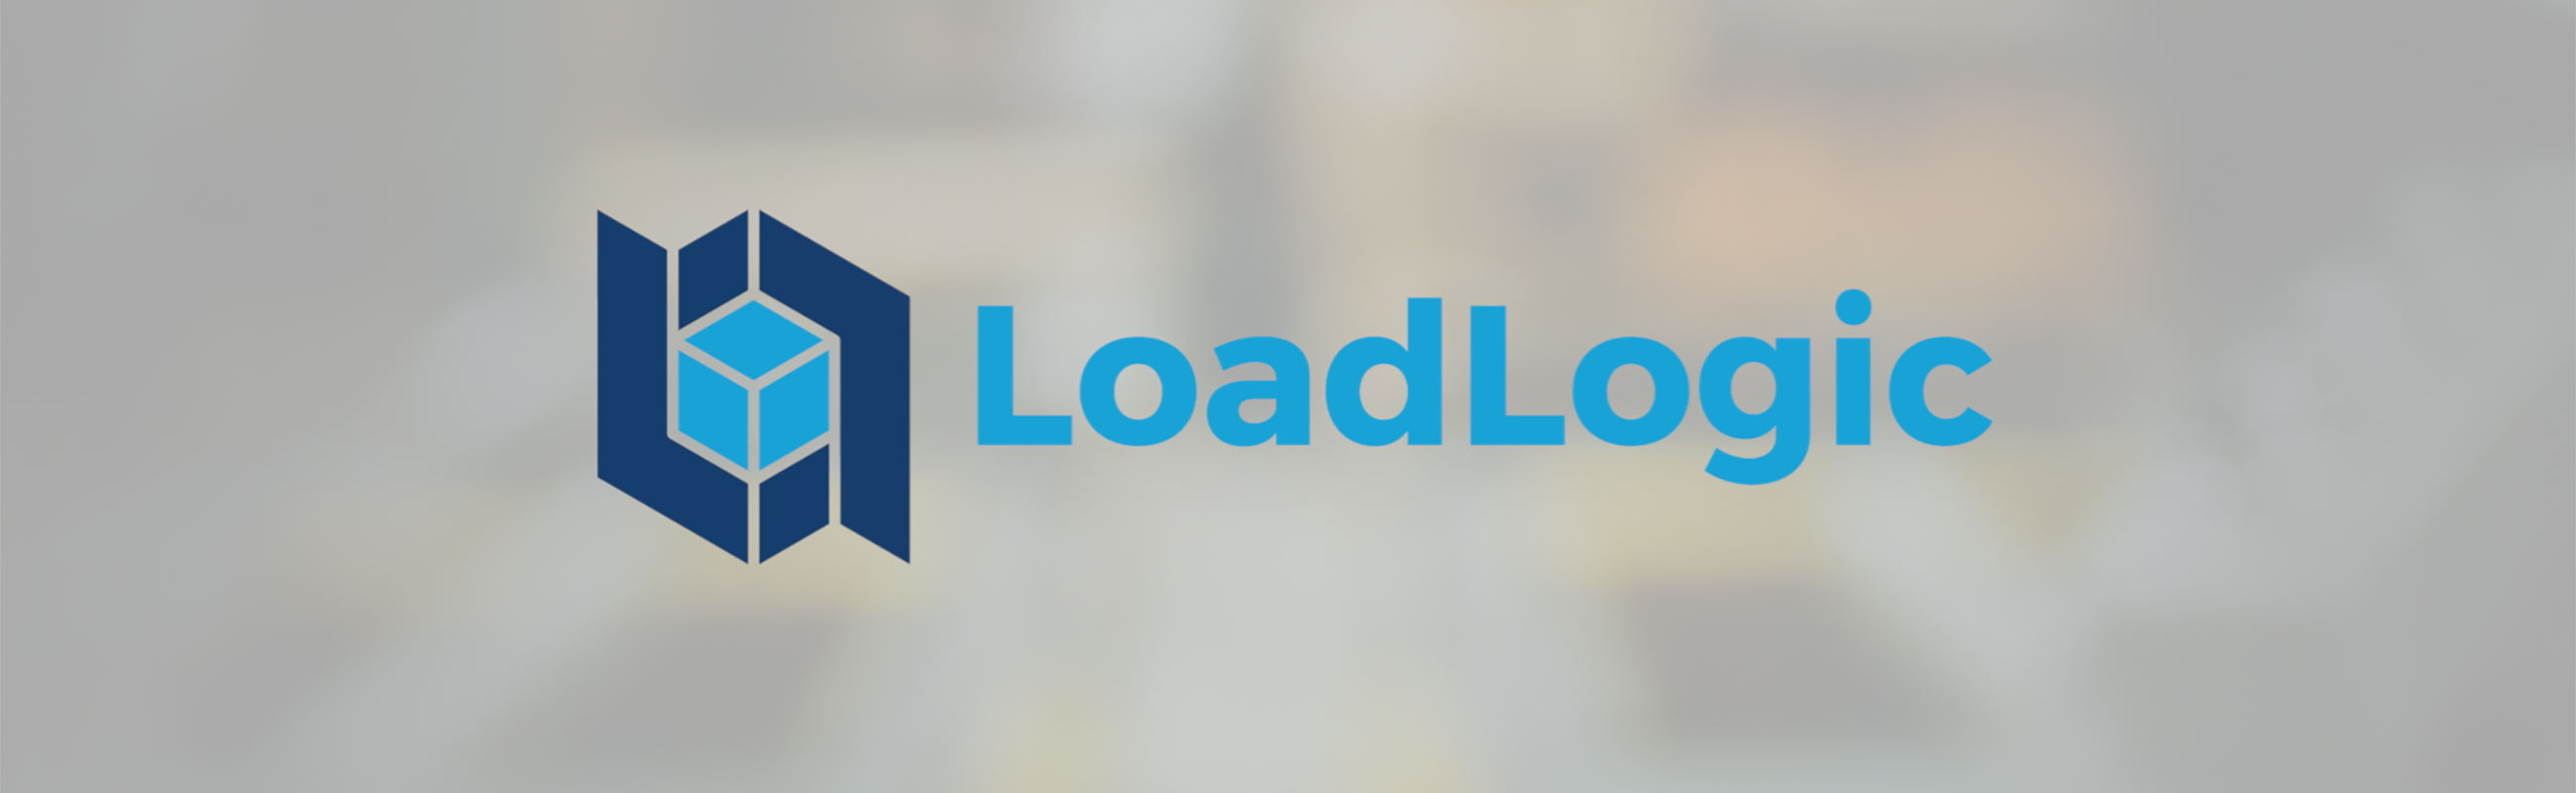 Loadlogic logo slide